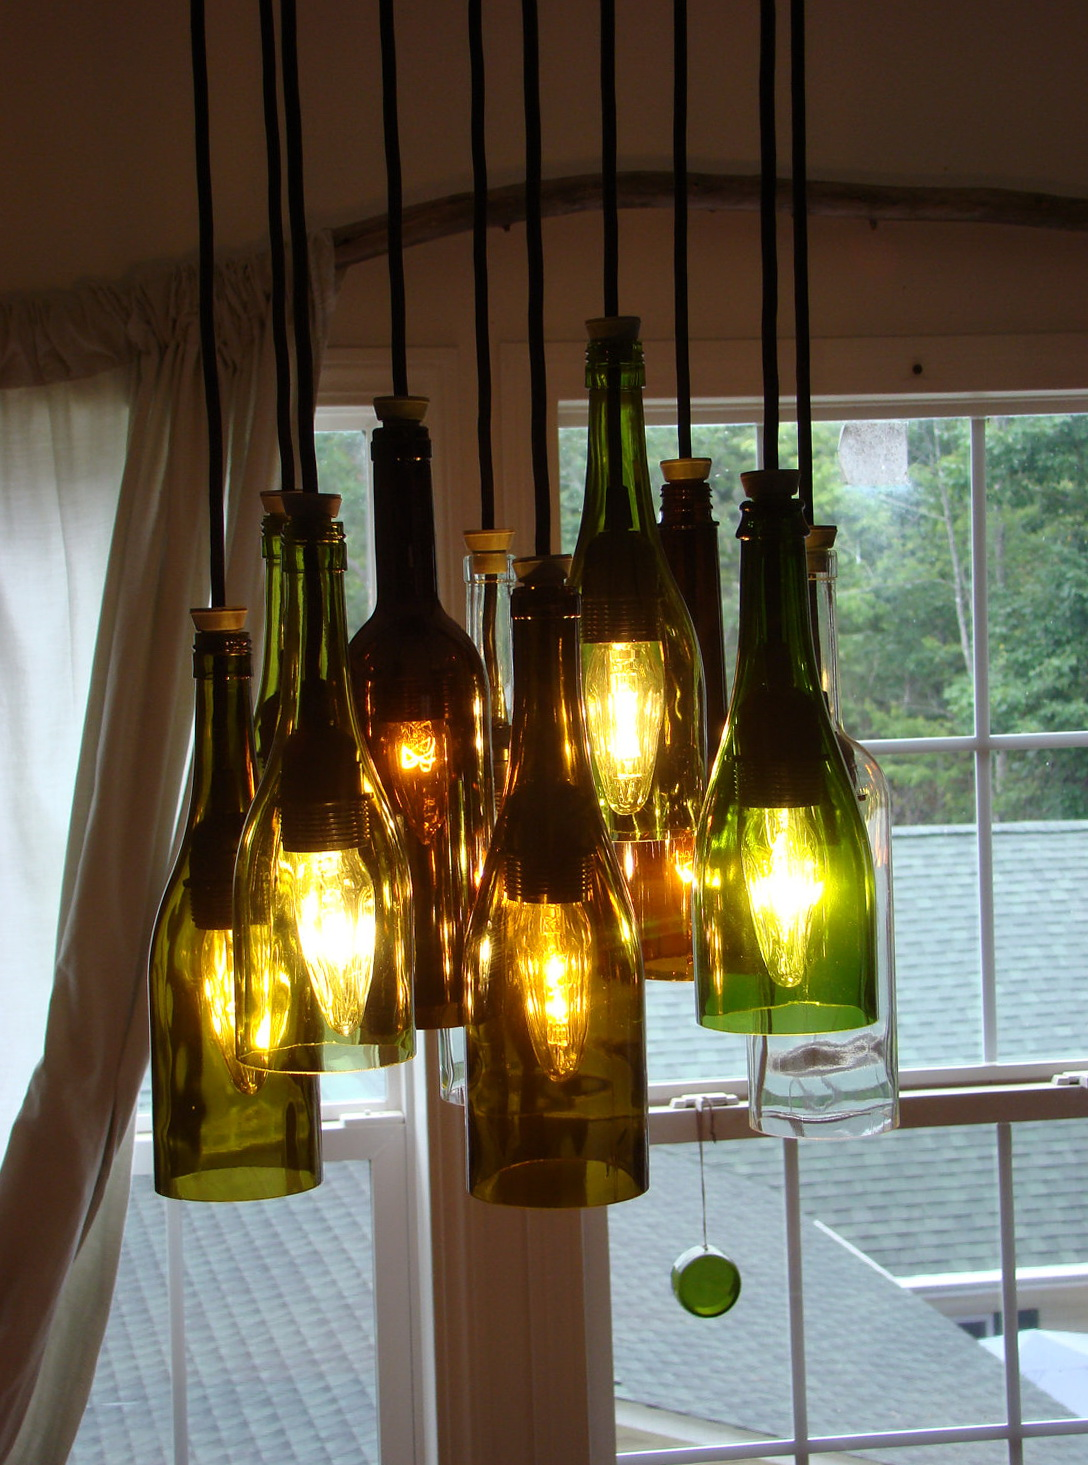 Wine bottle chandelier diy home design ideas wine bottle chandelier diy aloadofball Choice Image